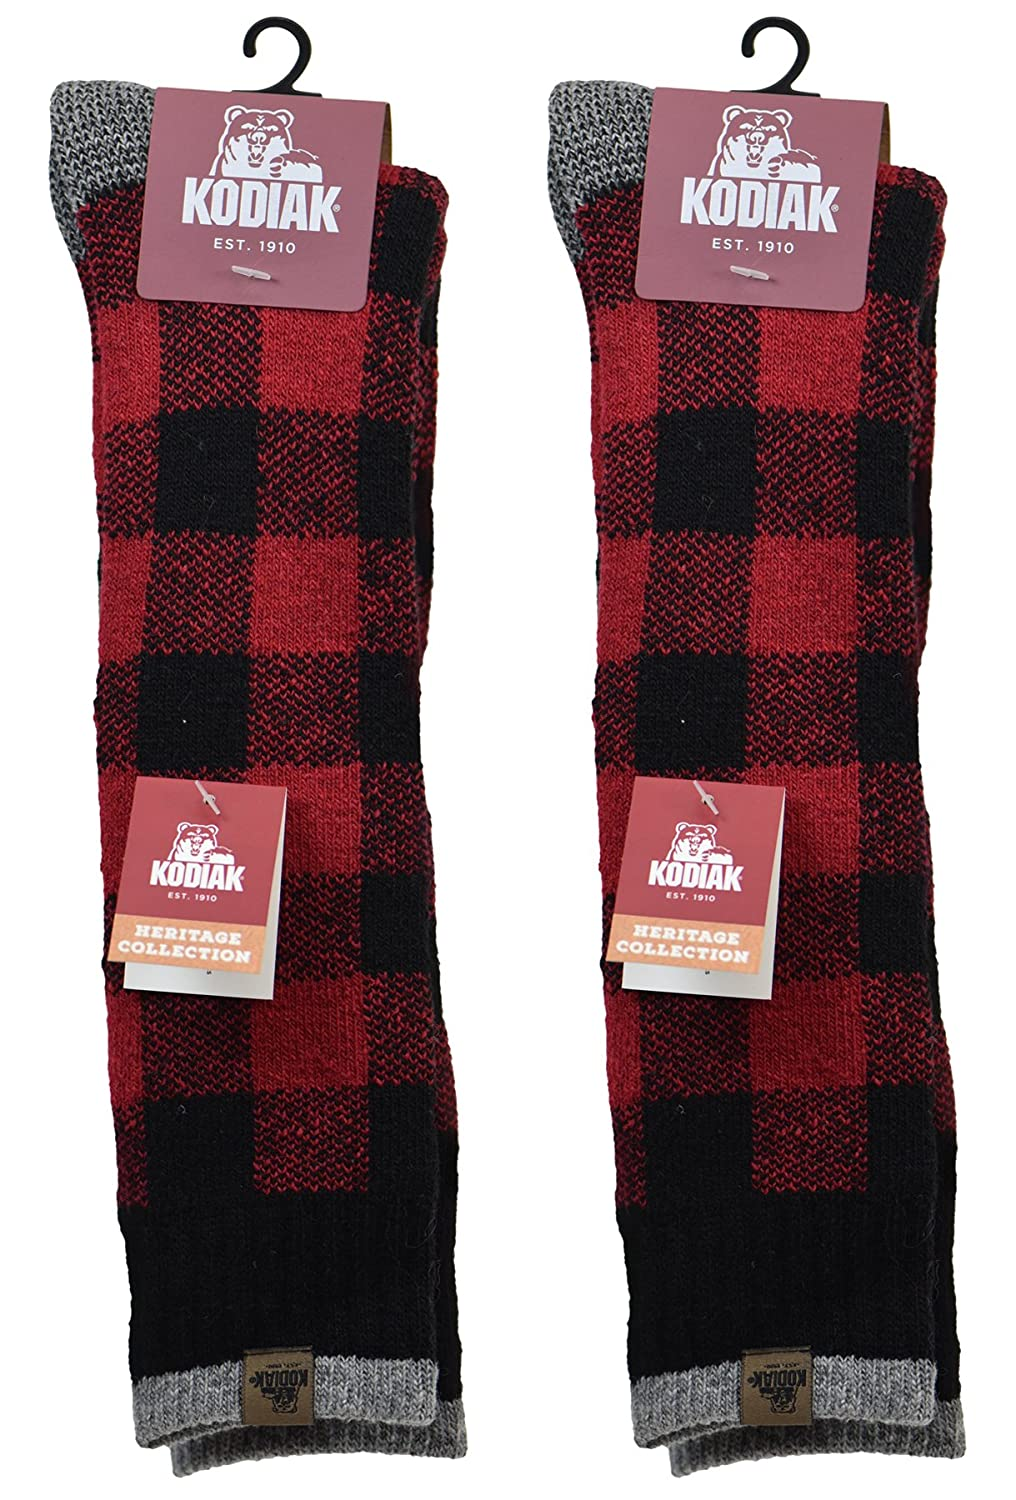 Kodiak Women's 2 Pairs of Soft Thermal Knee High , US Shoe Size 4-10 CAMC_7172_2PK_REDBLK